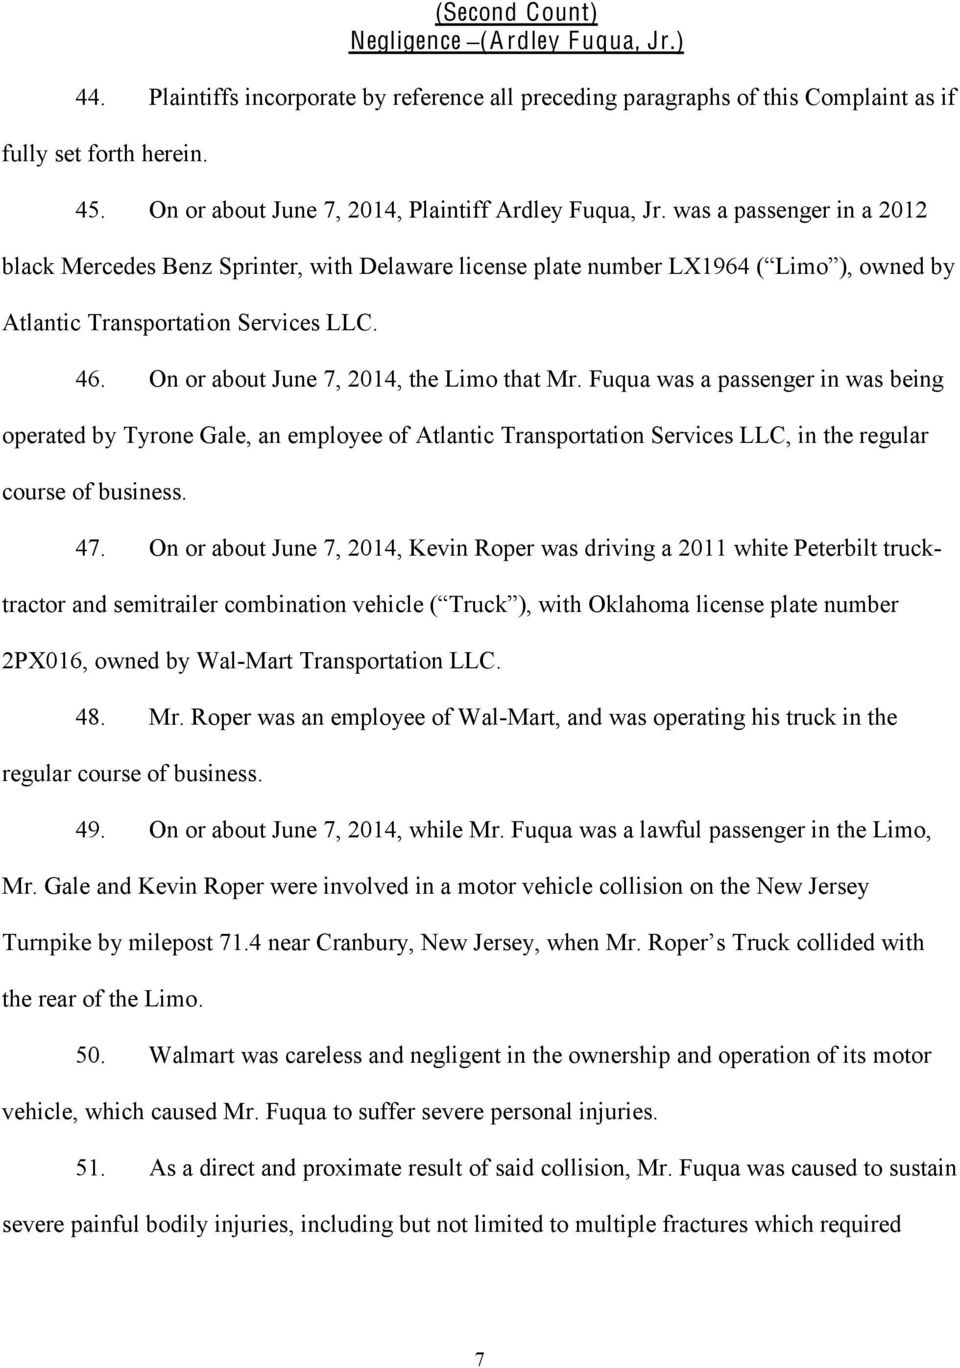 46. On or about June 7, 2014, the Limo that Mr. Fuqua was a passenger in was being operated by Tyrone Gale, an employee of Atlantic Transportation Services LLC, in the regular course of business. 47.